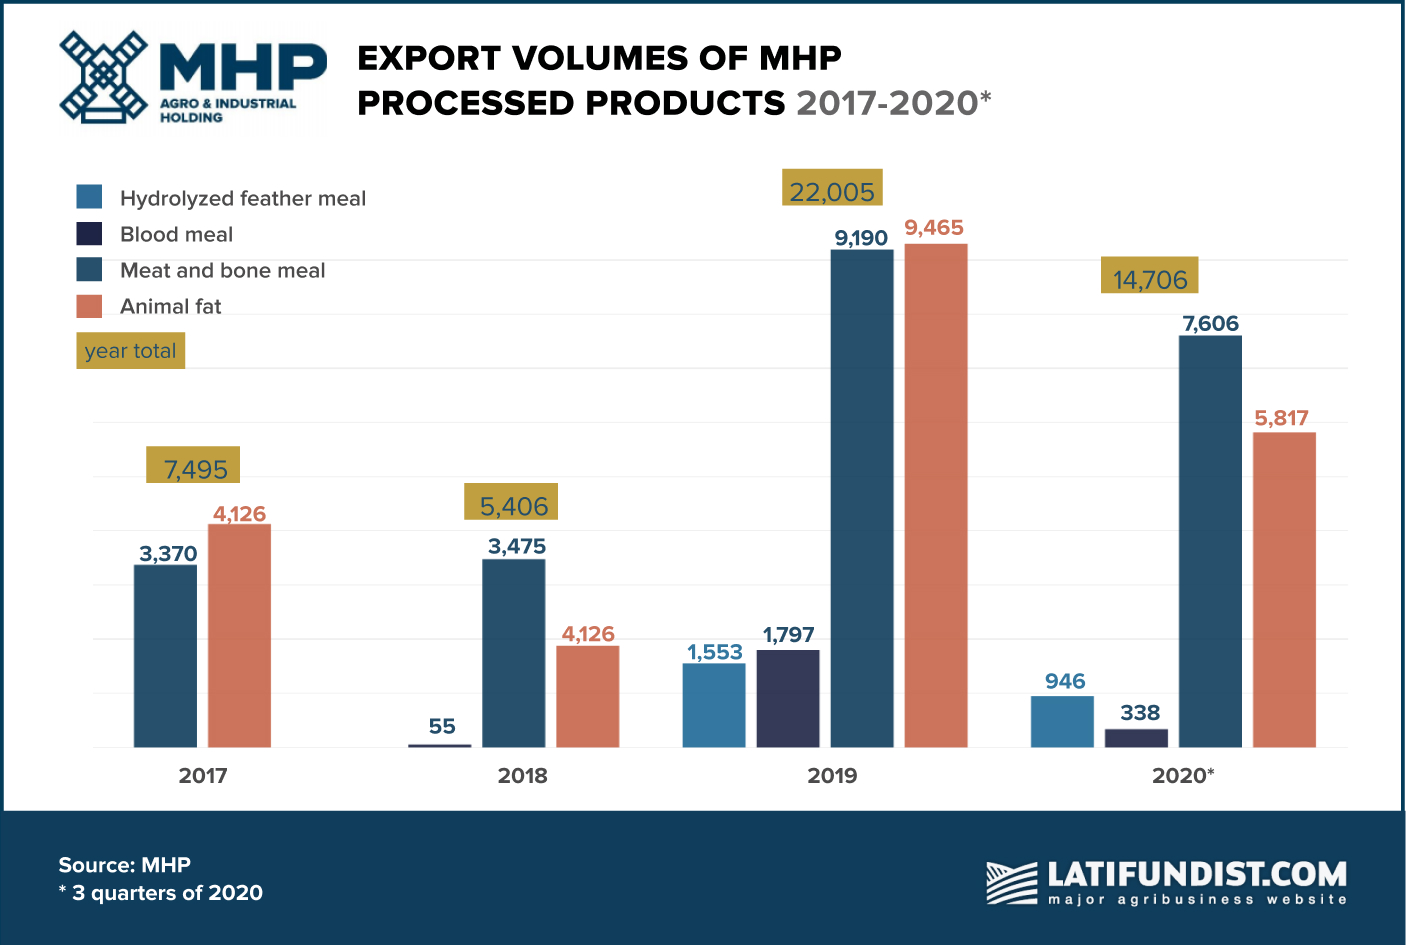 Export volumes of MHP processed products in 2017-20